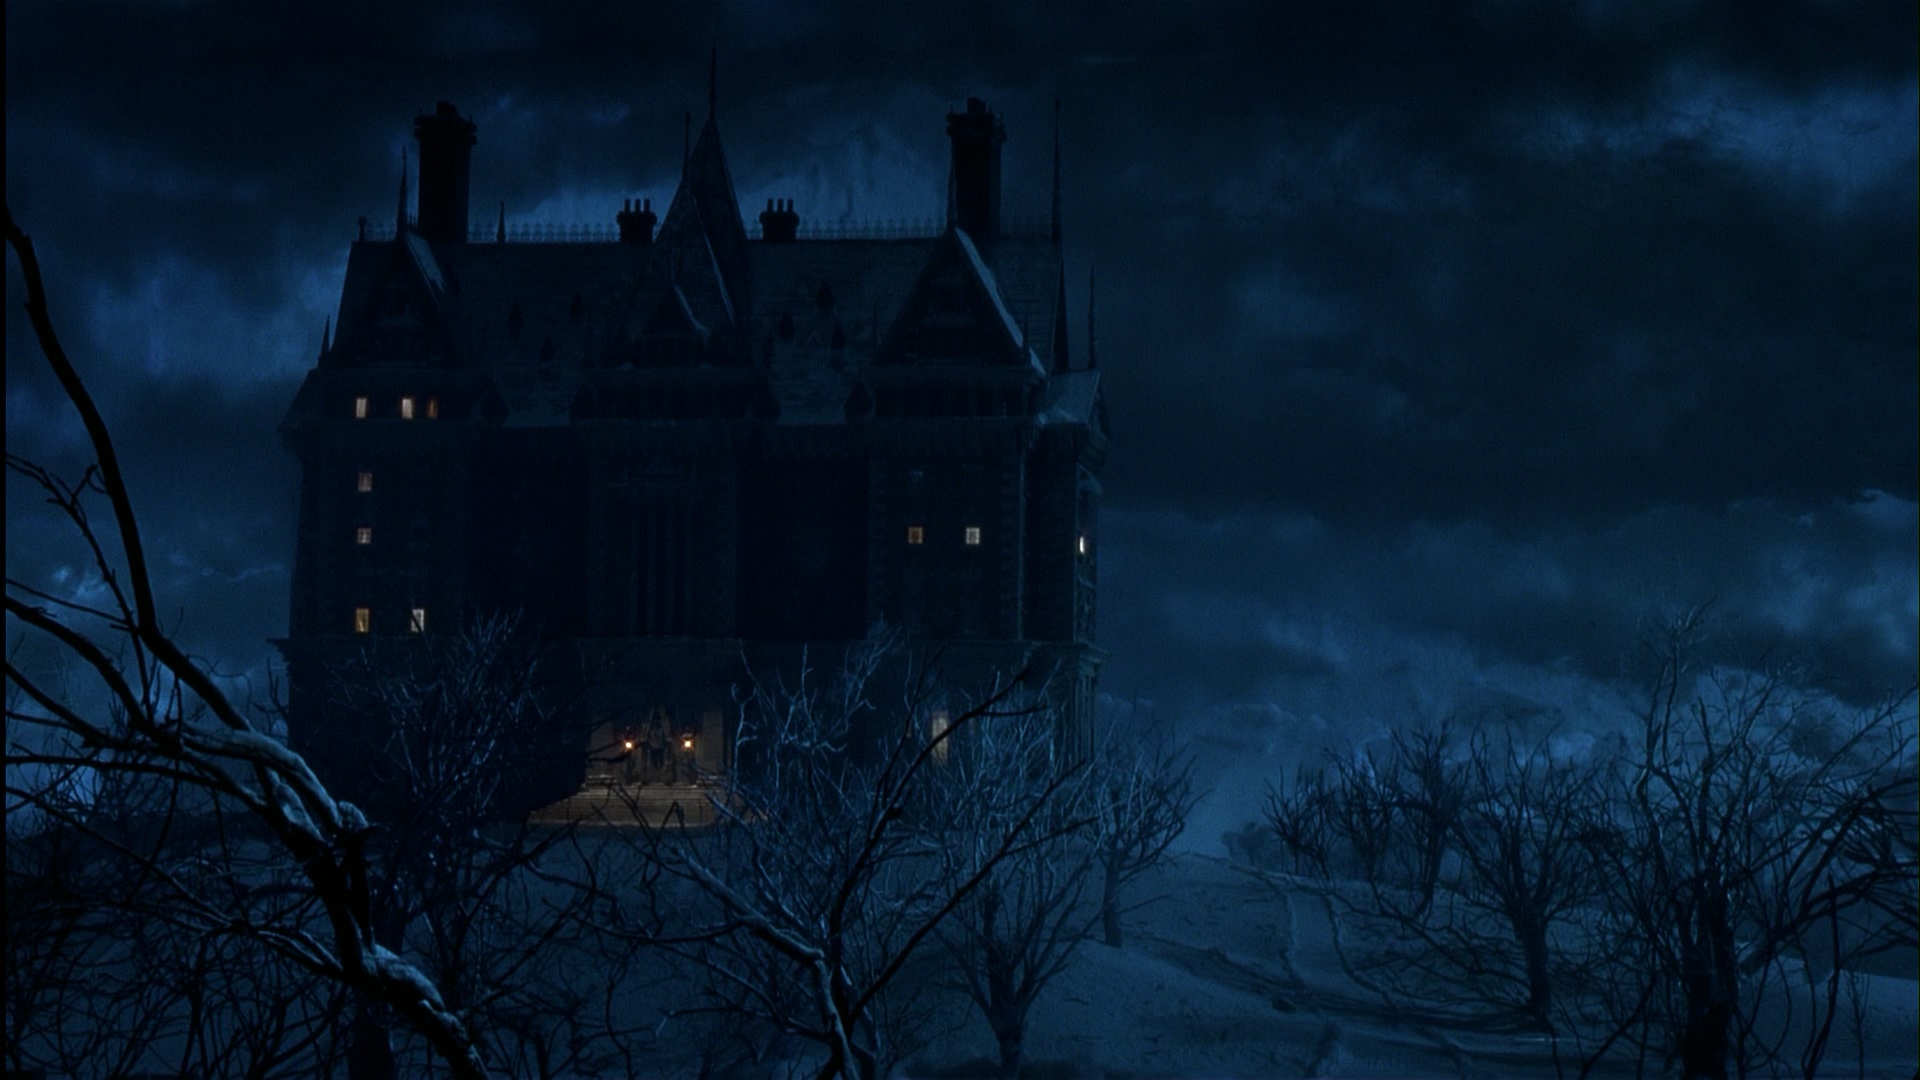 Batman online gallery wayne manor from batman returns for Www the house com returns